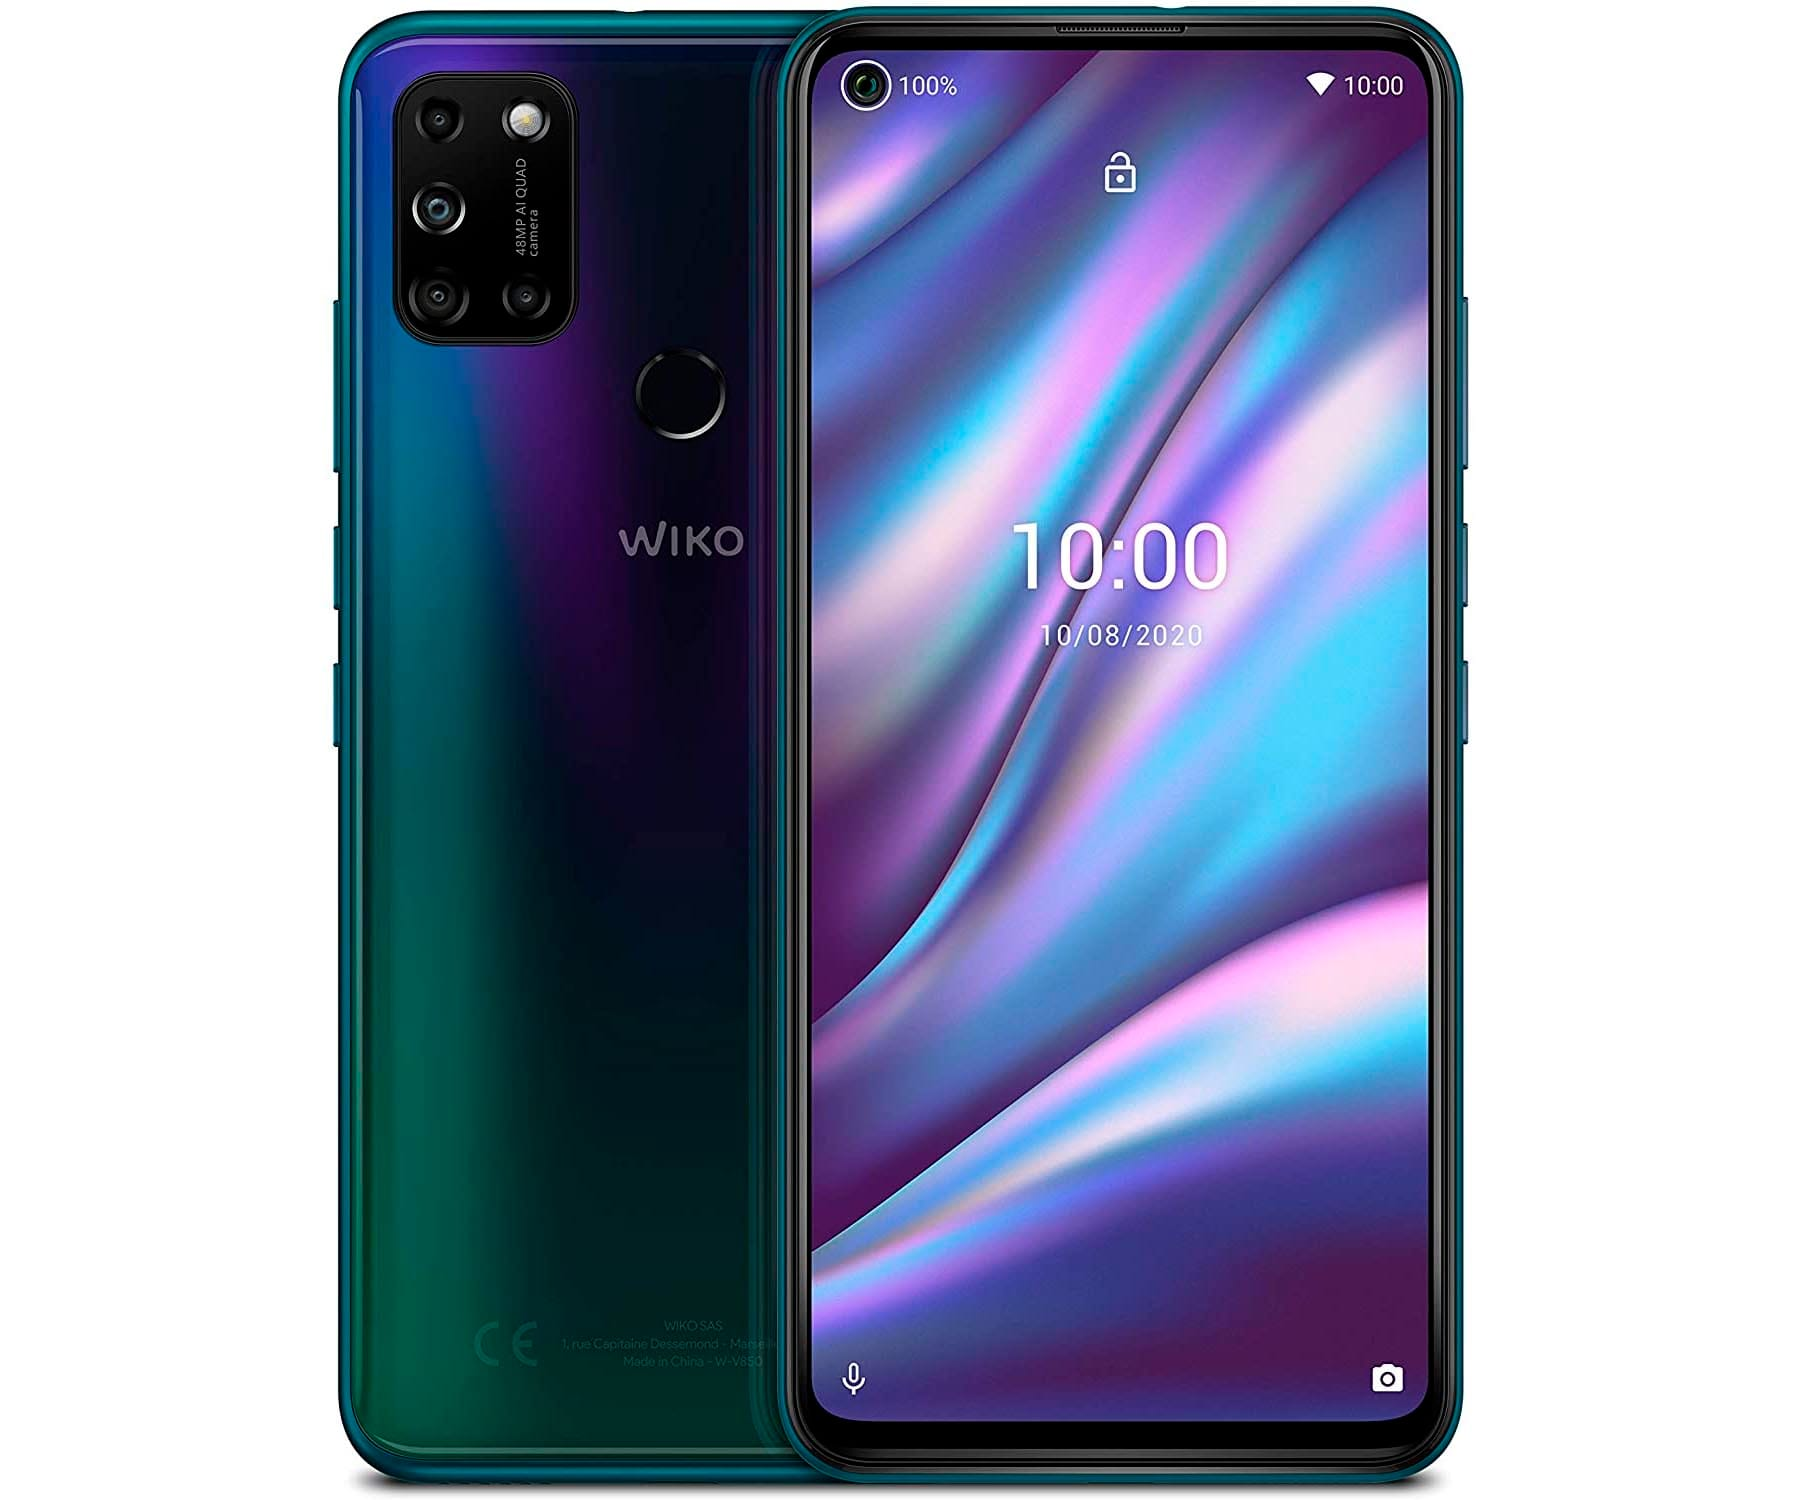 WIKO VIEW5 PLUS AZUL MÓVIL 4G DUAL SIM 6.55'' IPS HD+ OCTACORE 128GB 4GB RAM QUADCAM 48MP SELFIES 8MP